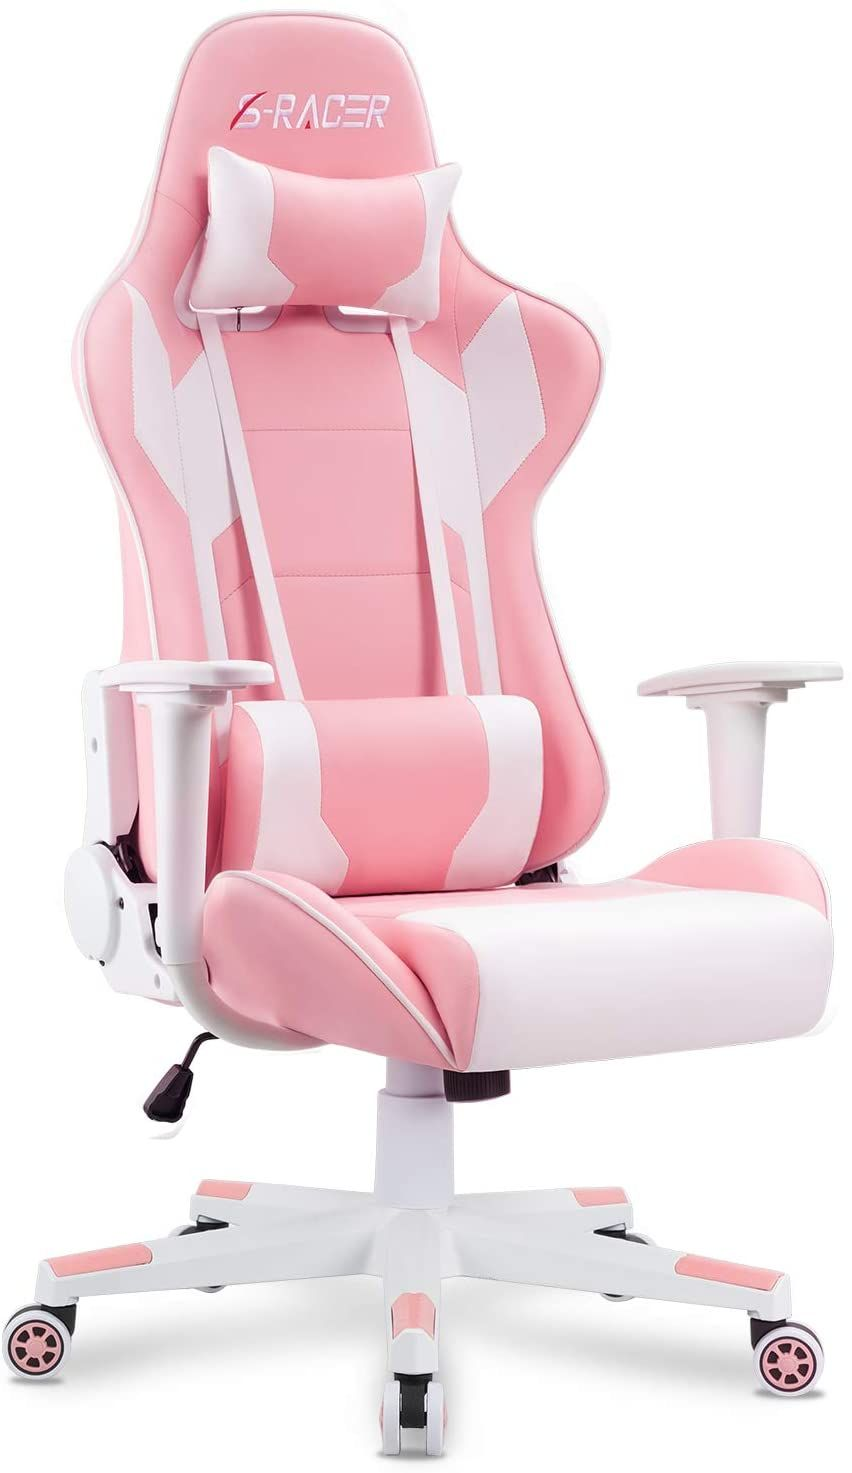 Best pink gaming chair under 100 to 200 in 2020